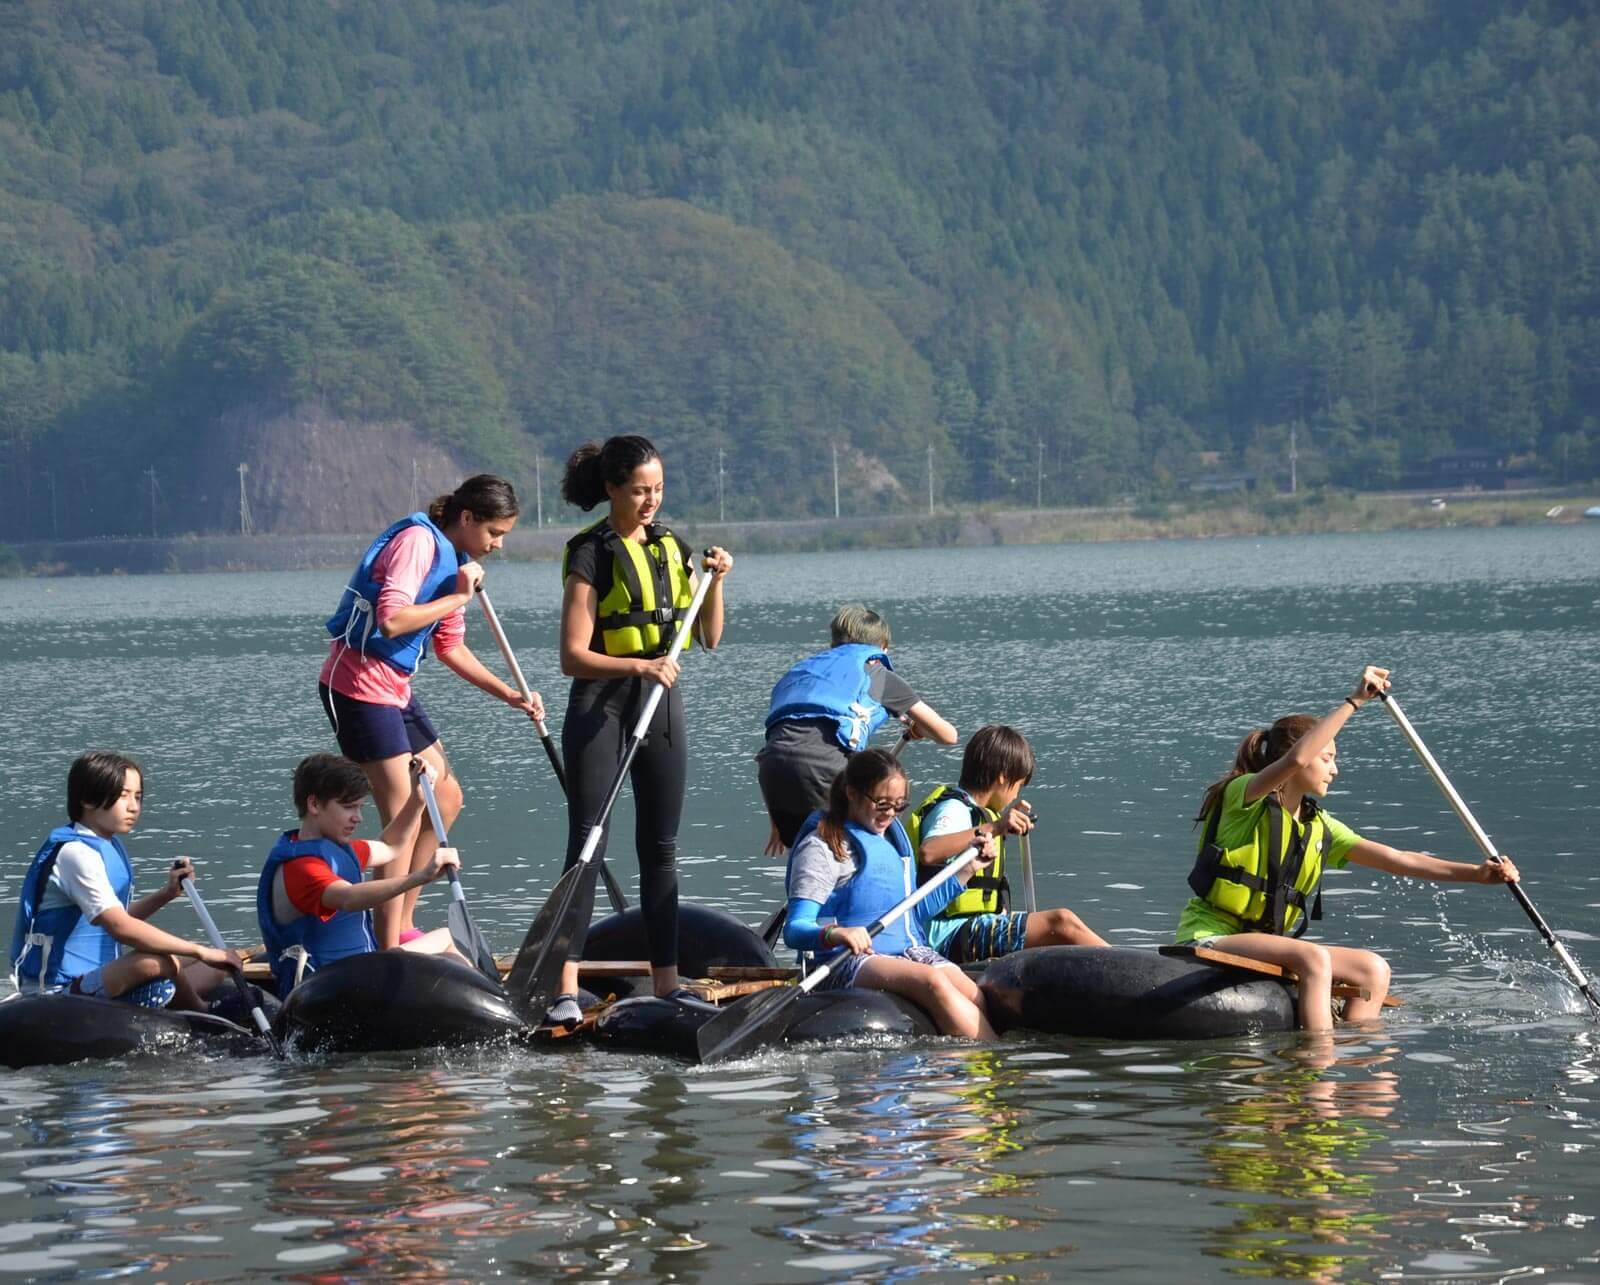 Middle School Students Row a Hand-Built Watercraft